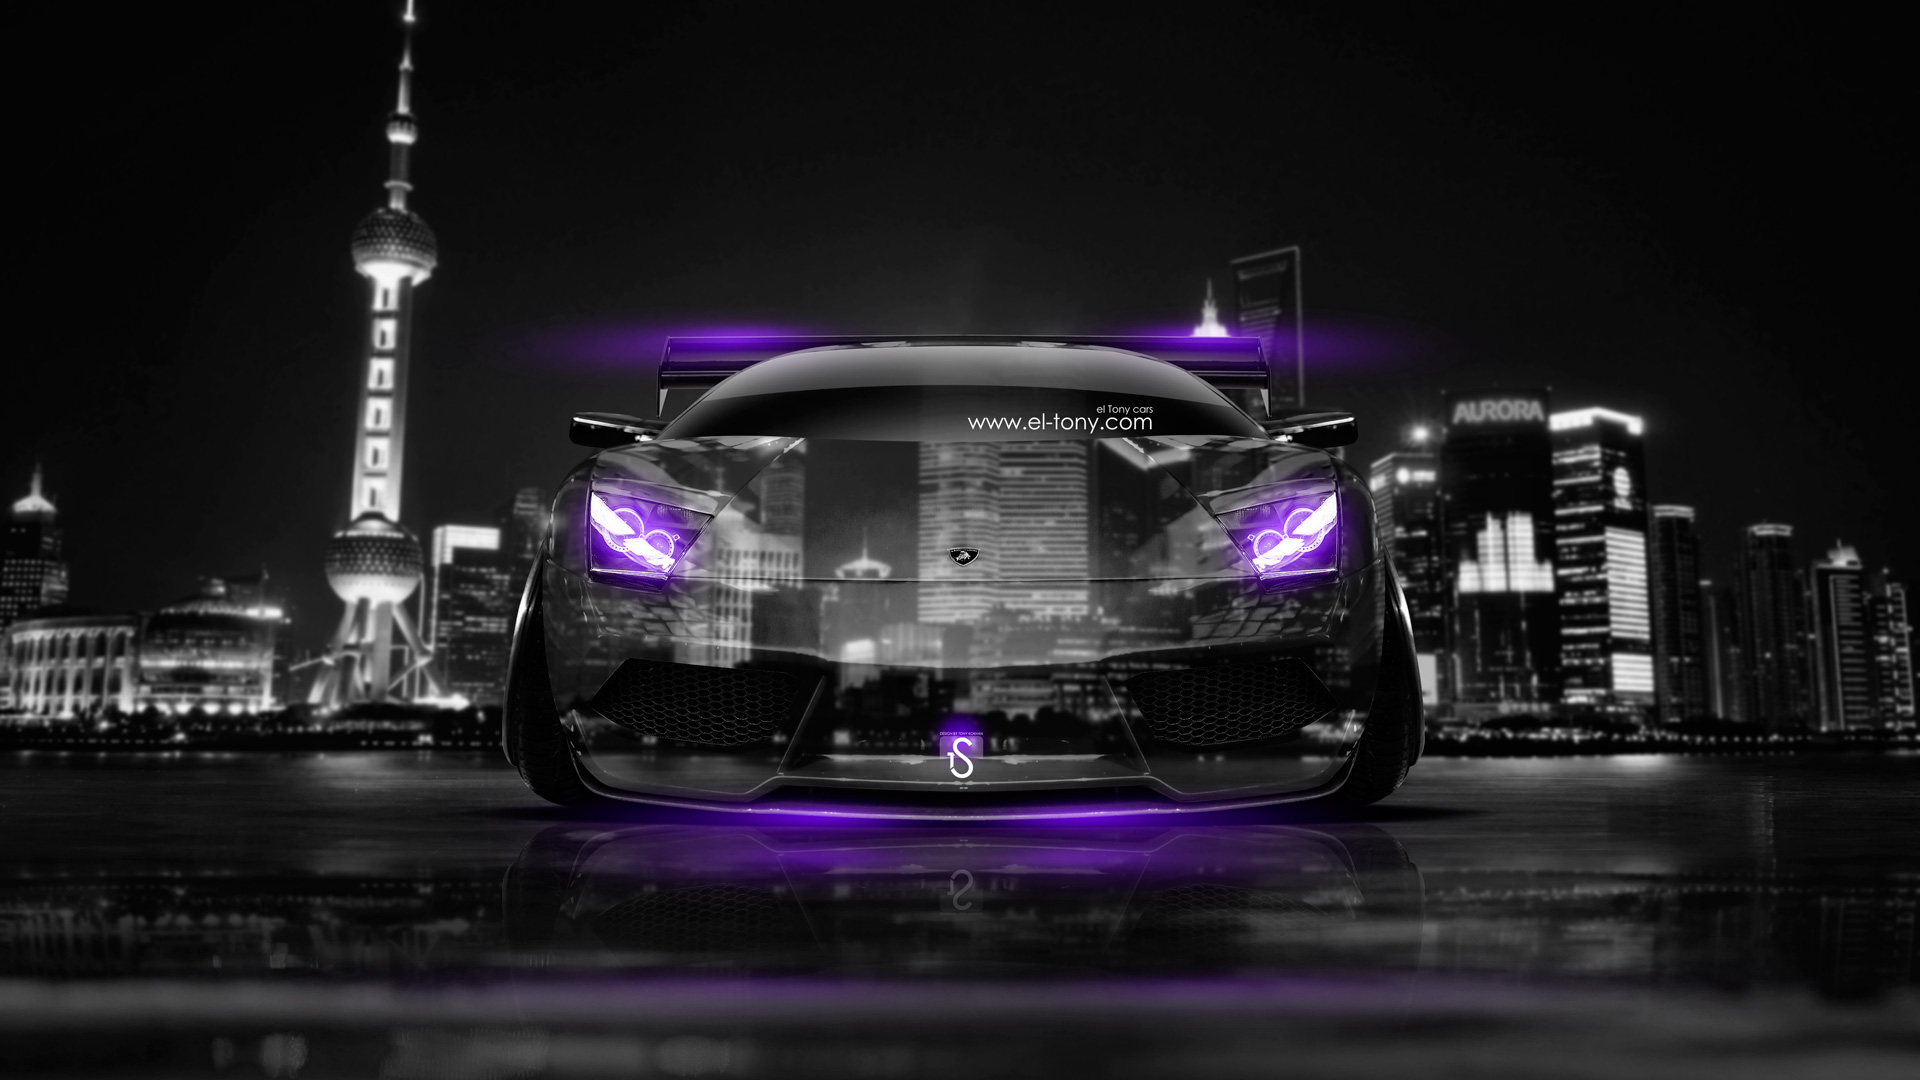 Lamborghini Murcielago Tuning Front Crystal City Car 2014